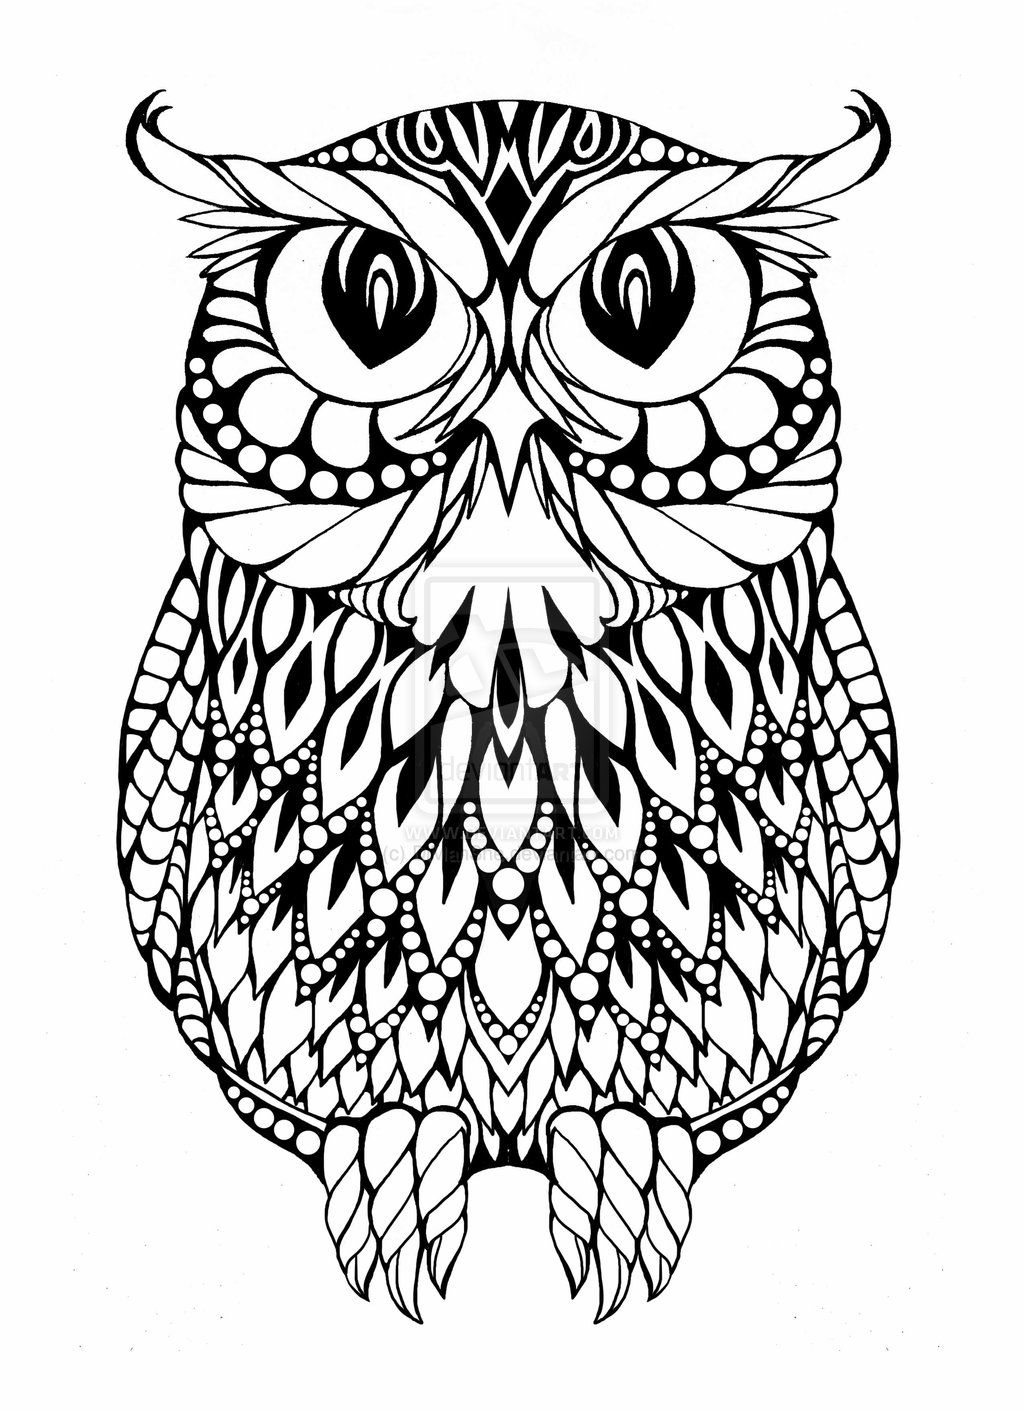 Owl mandala coloring pages - Owl Coloring Pages Coloring Pages Pictures Imagixs